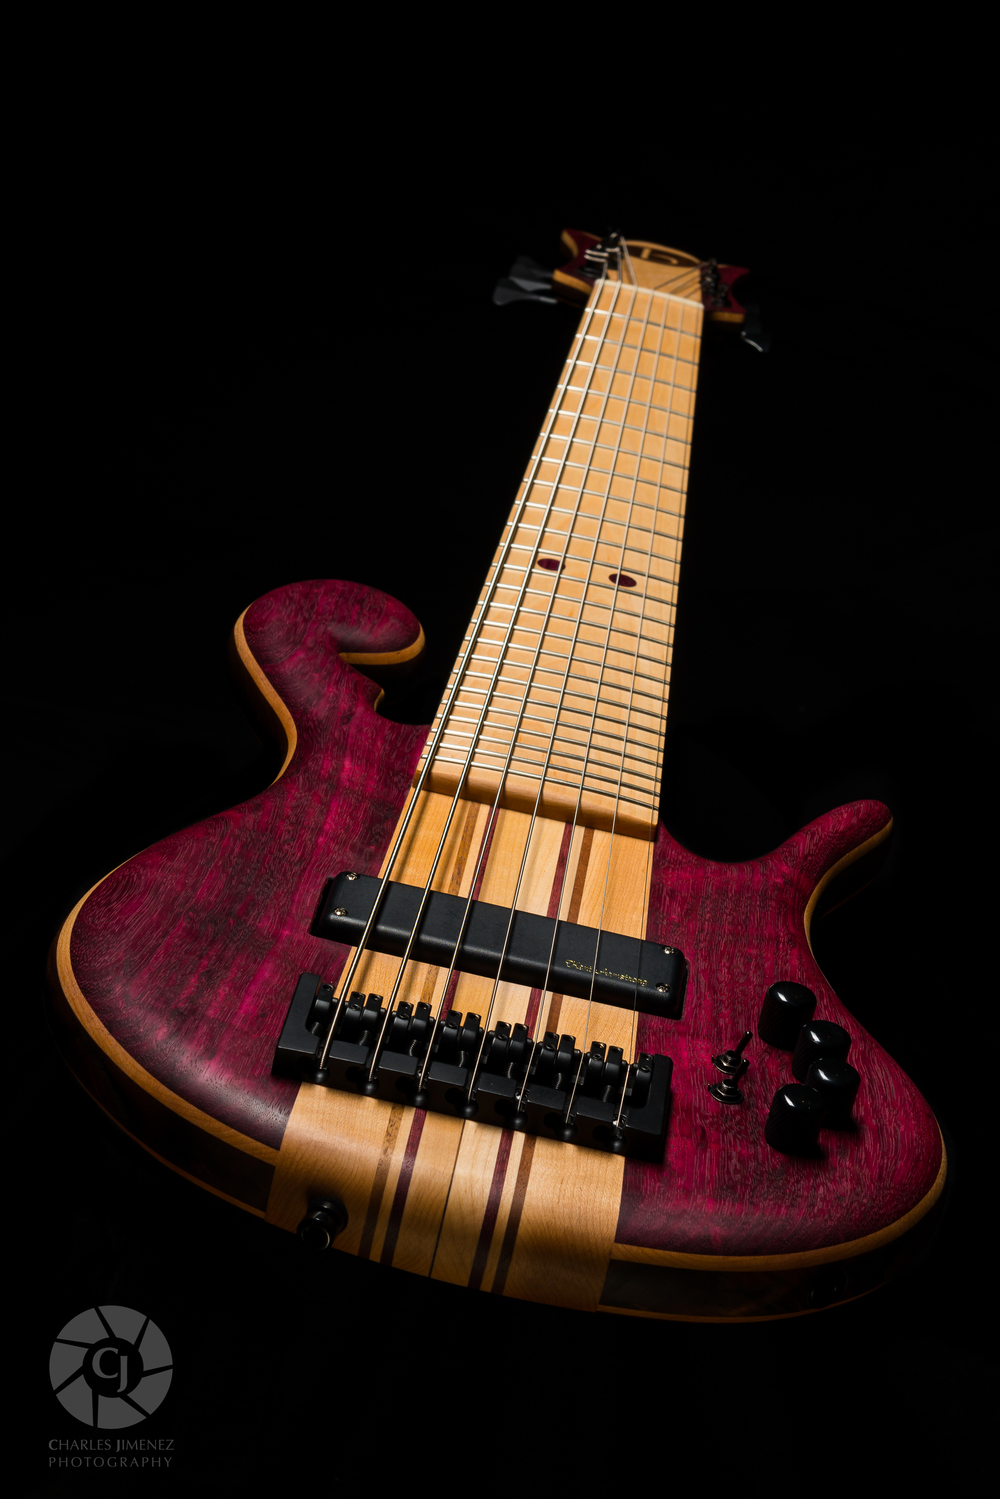 BMT Guitars_Grimace_January 04 2014_01.jpg